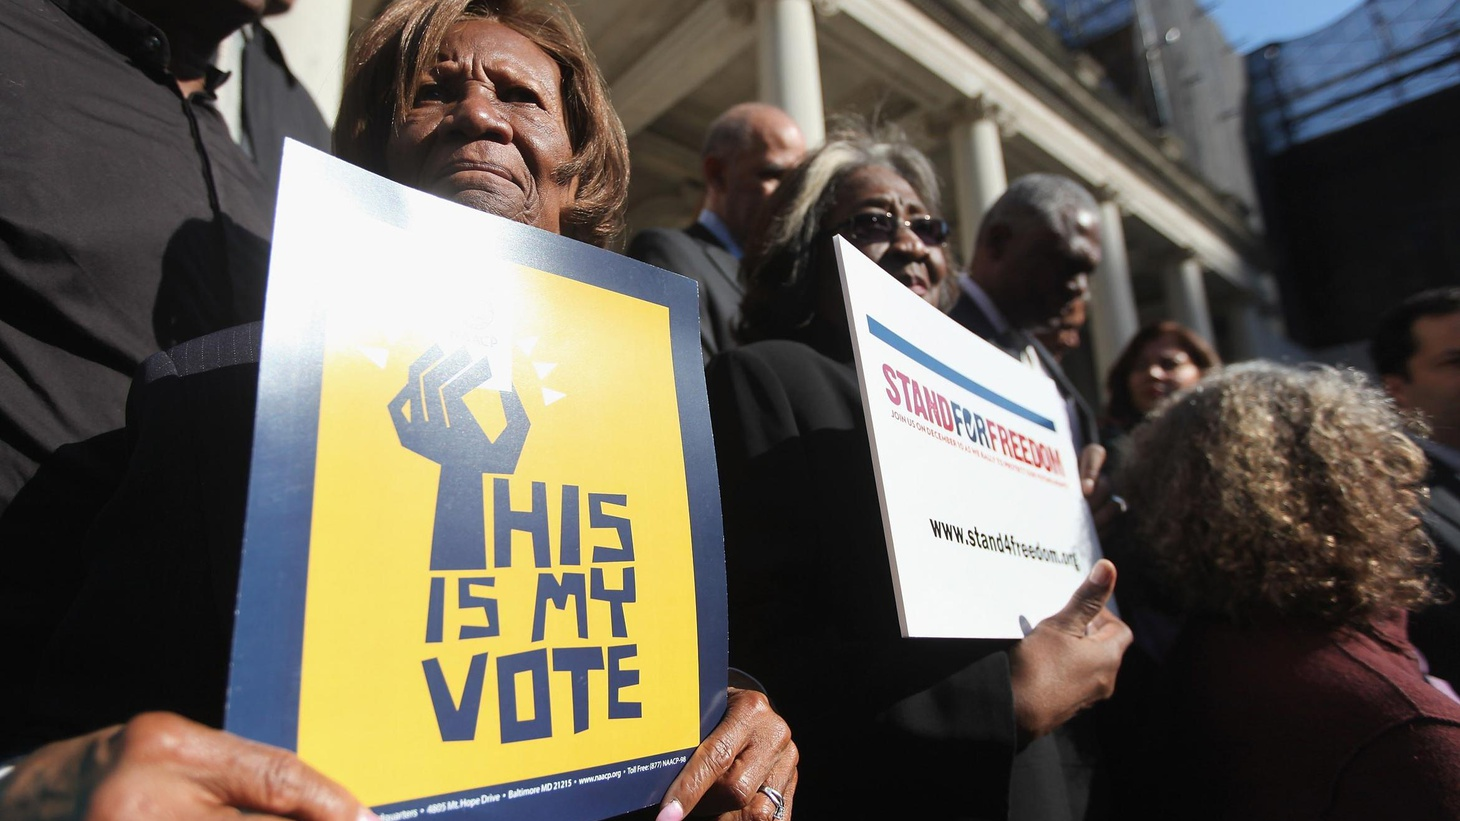 Should voters have to show photo ID's? Several states have laws in place. But when South Carolina passed a new law, the Justice Department stepped in to block it.